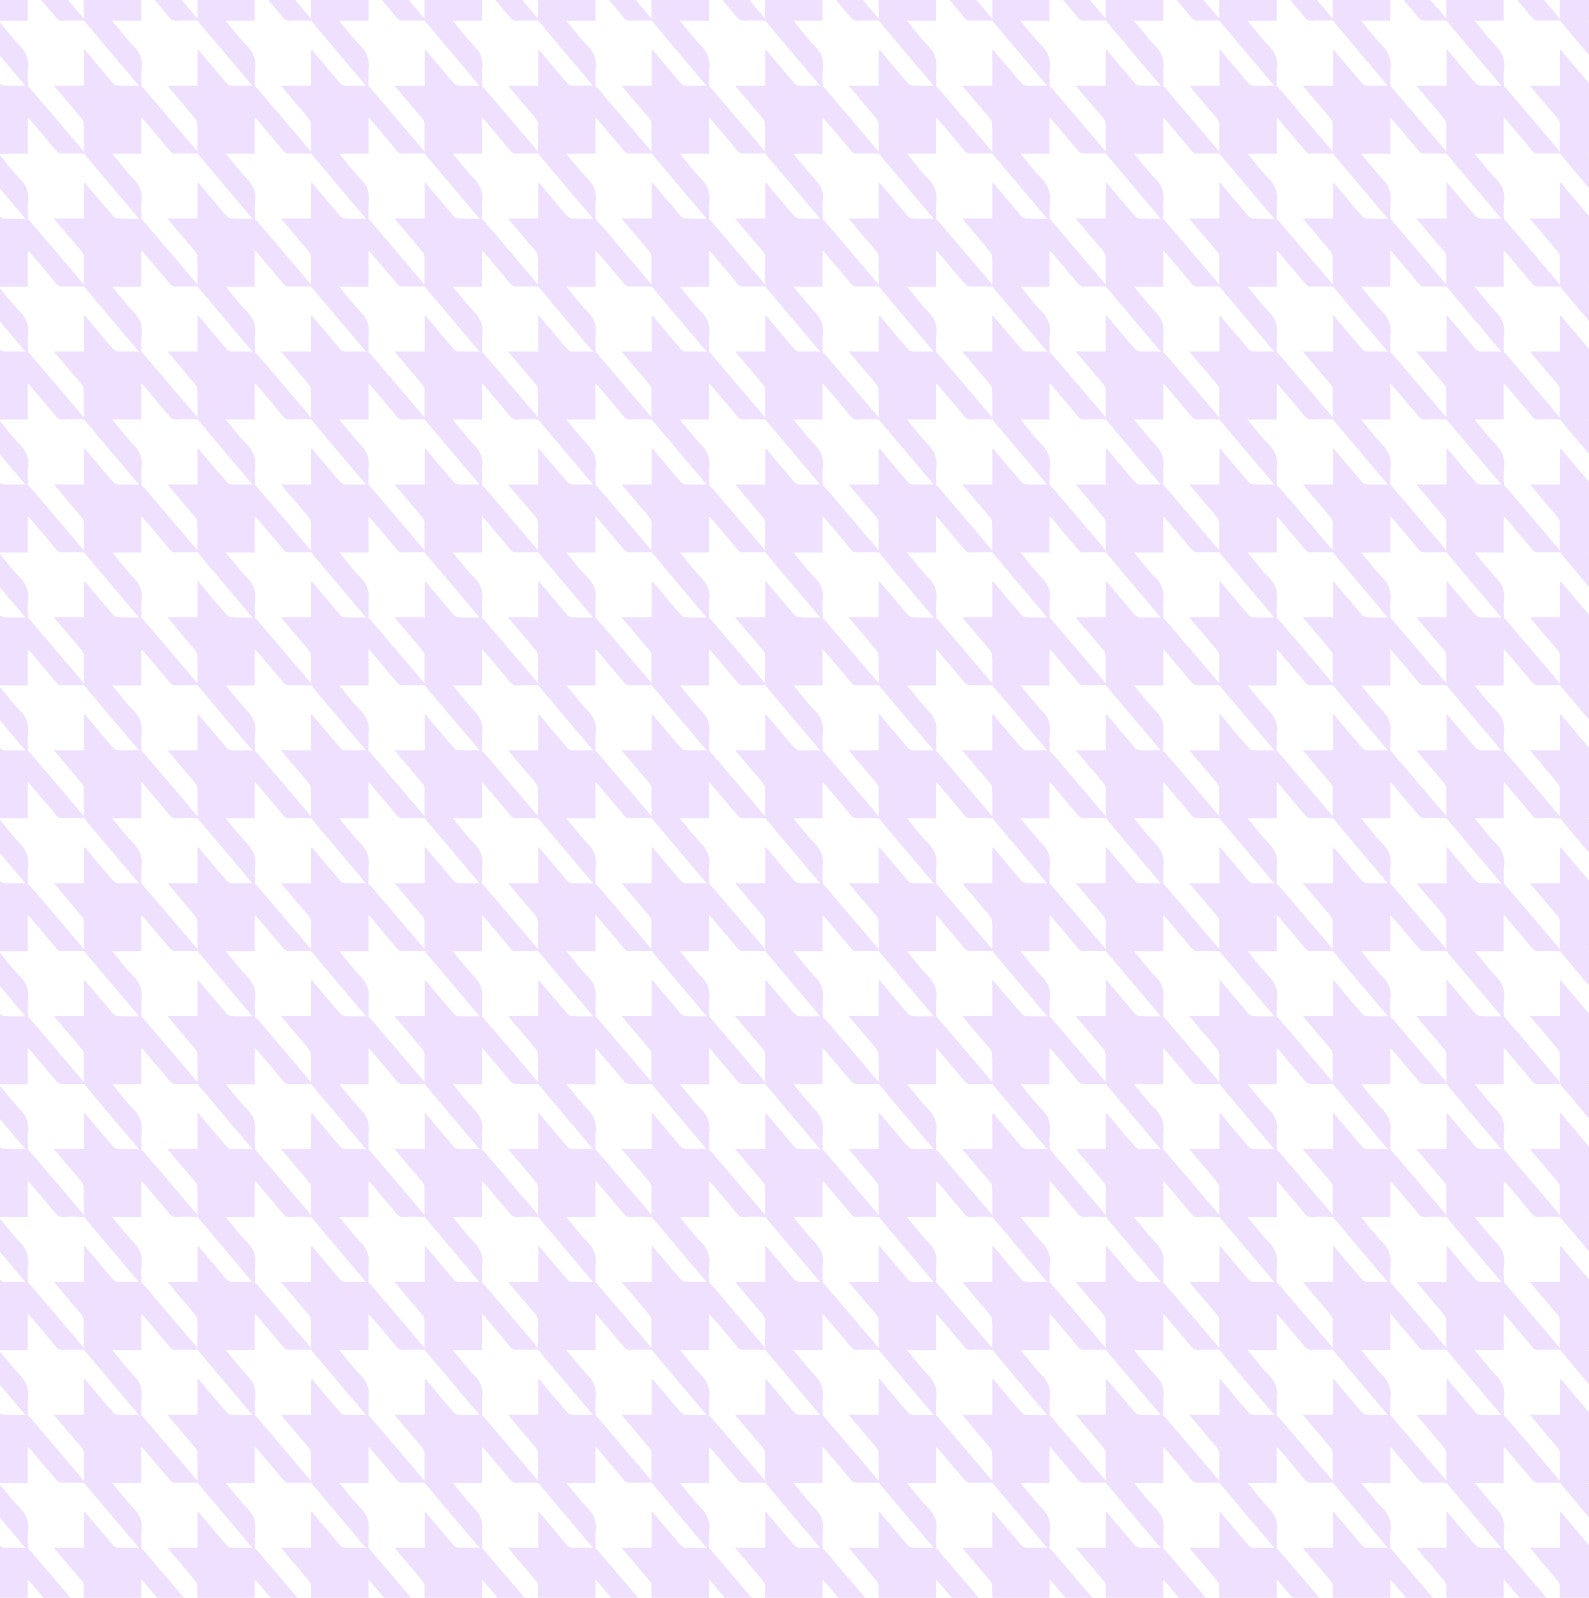 Baby Bamboo Lilac Houndstooth